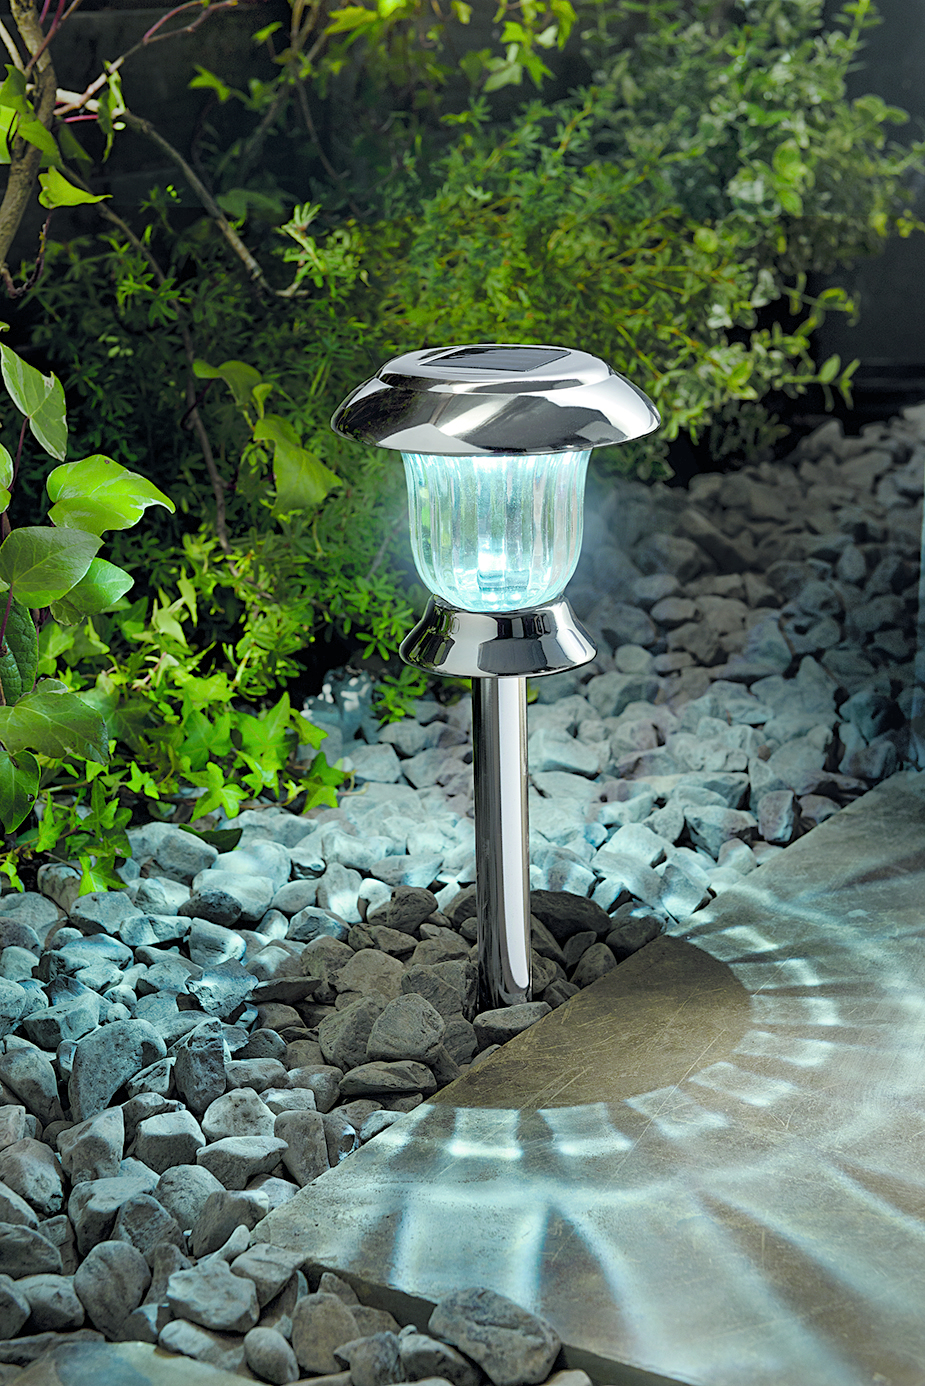 Cole & Bright Solar Post Lights, Led Pathway Garden Lamps. Patio Umbrella Store Coupon. Brick Mould Patio Door. Covered Patio Restaurants Austin. Patio Table Home Hardware. Decorating A Patio Wall. Patio Furniture On Sale. Patio Builders Rockingham. Concrete Patio In Calgary